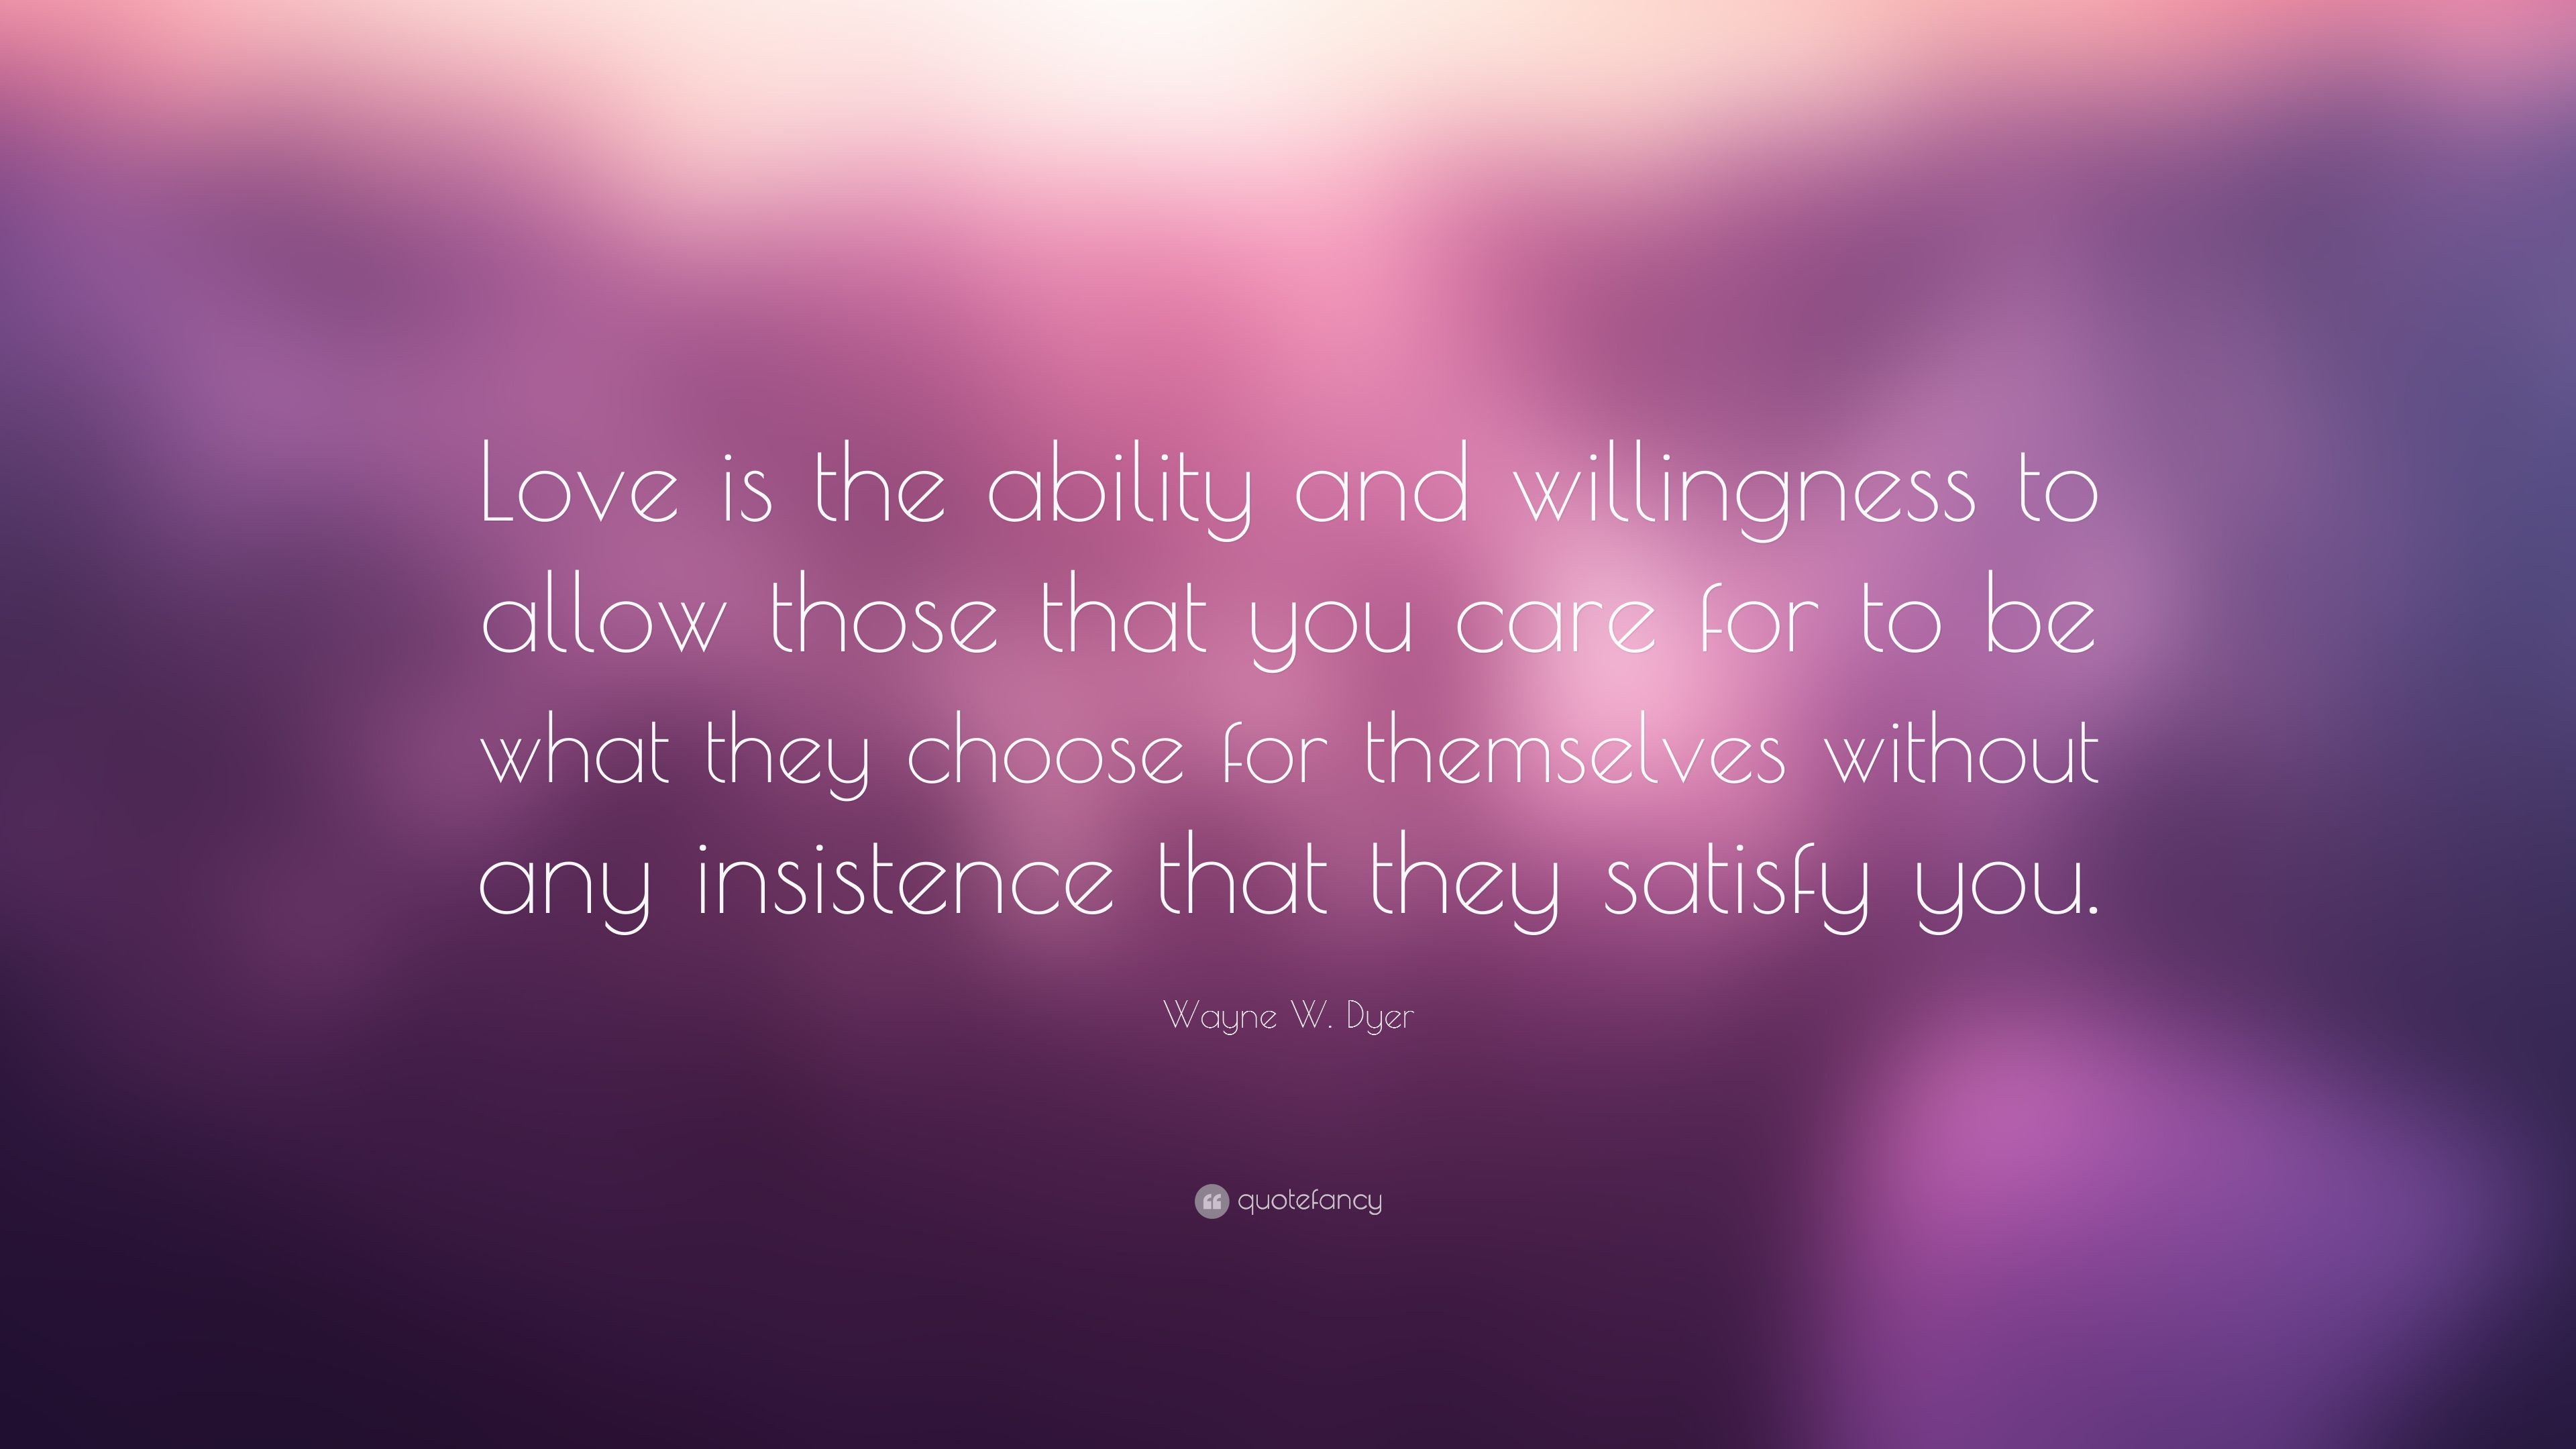 Wayne W Dyer Quote Love Is The Ability And Willingness To